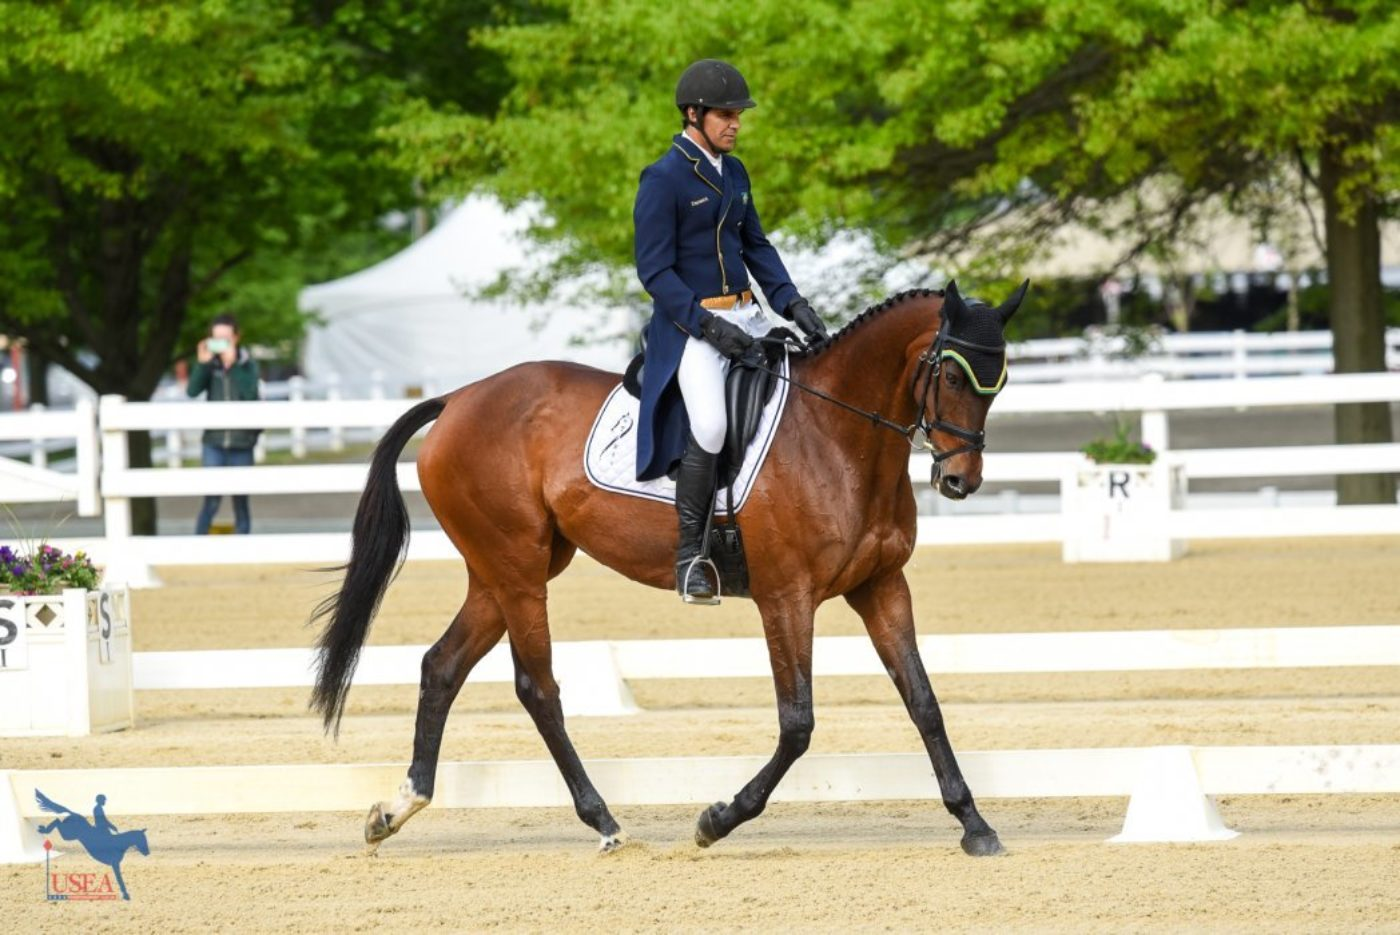 20th - Nilson Moreira da Silva and Lady Colina - 48.5